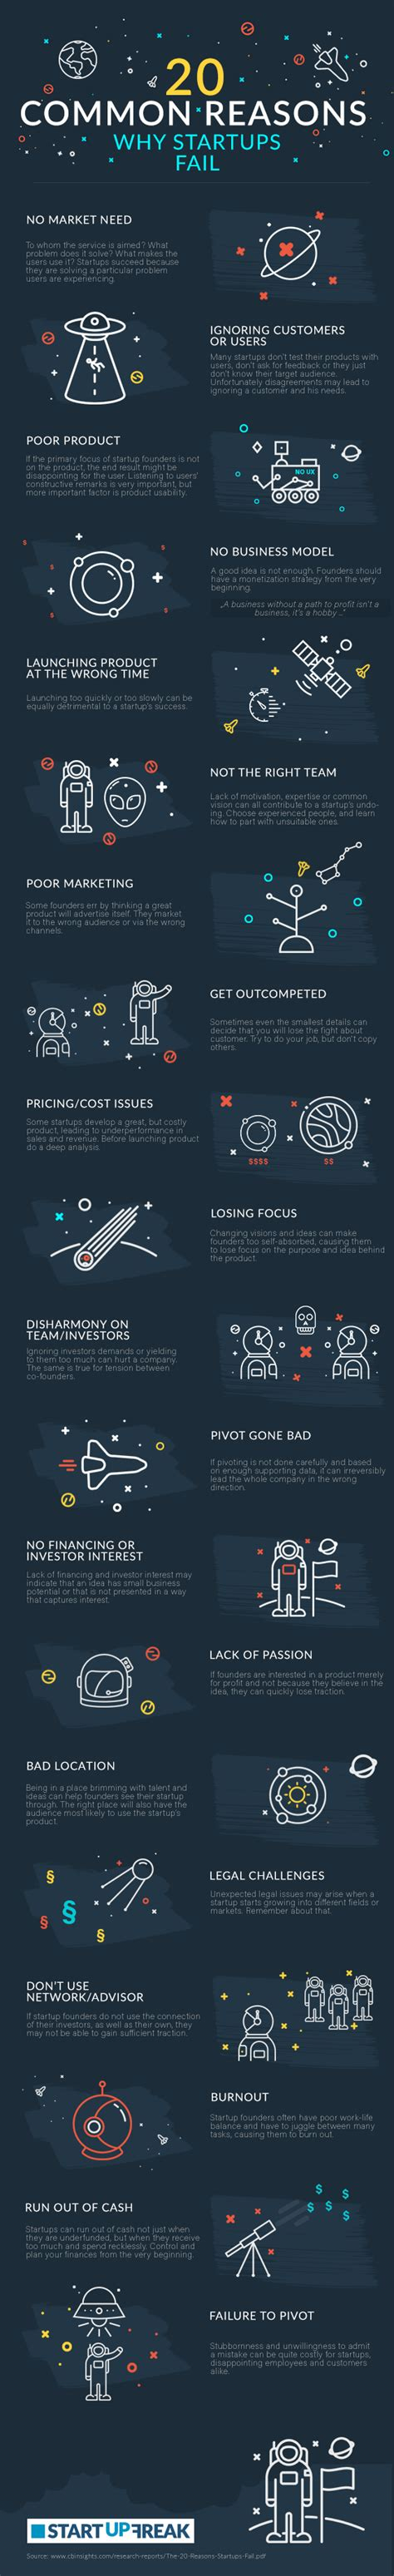 what you about startups is wrong how to navigate entrepreneurial legends that threaten your relationships your health your finances and your career books 20 common reasons why startup fails infographic